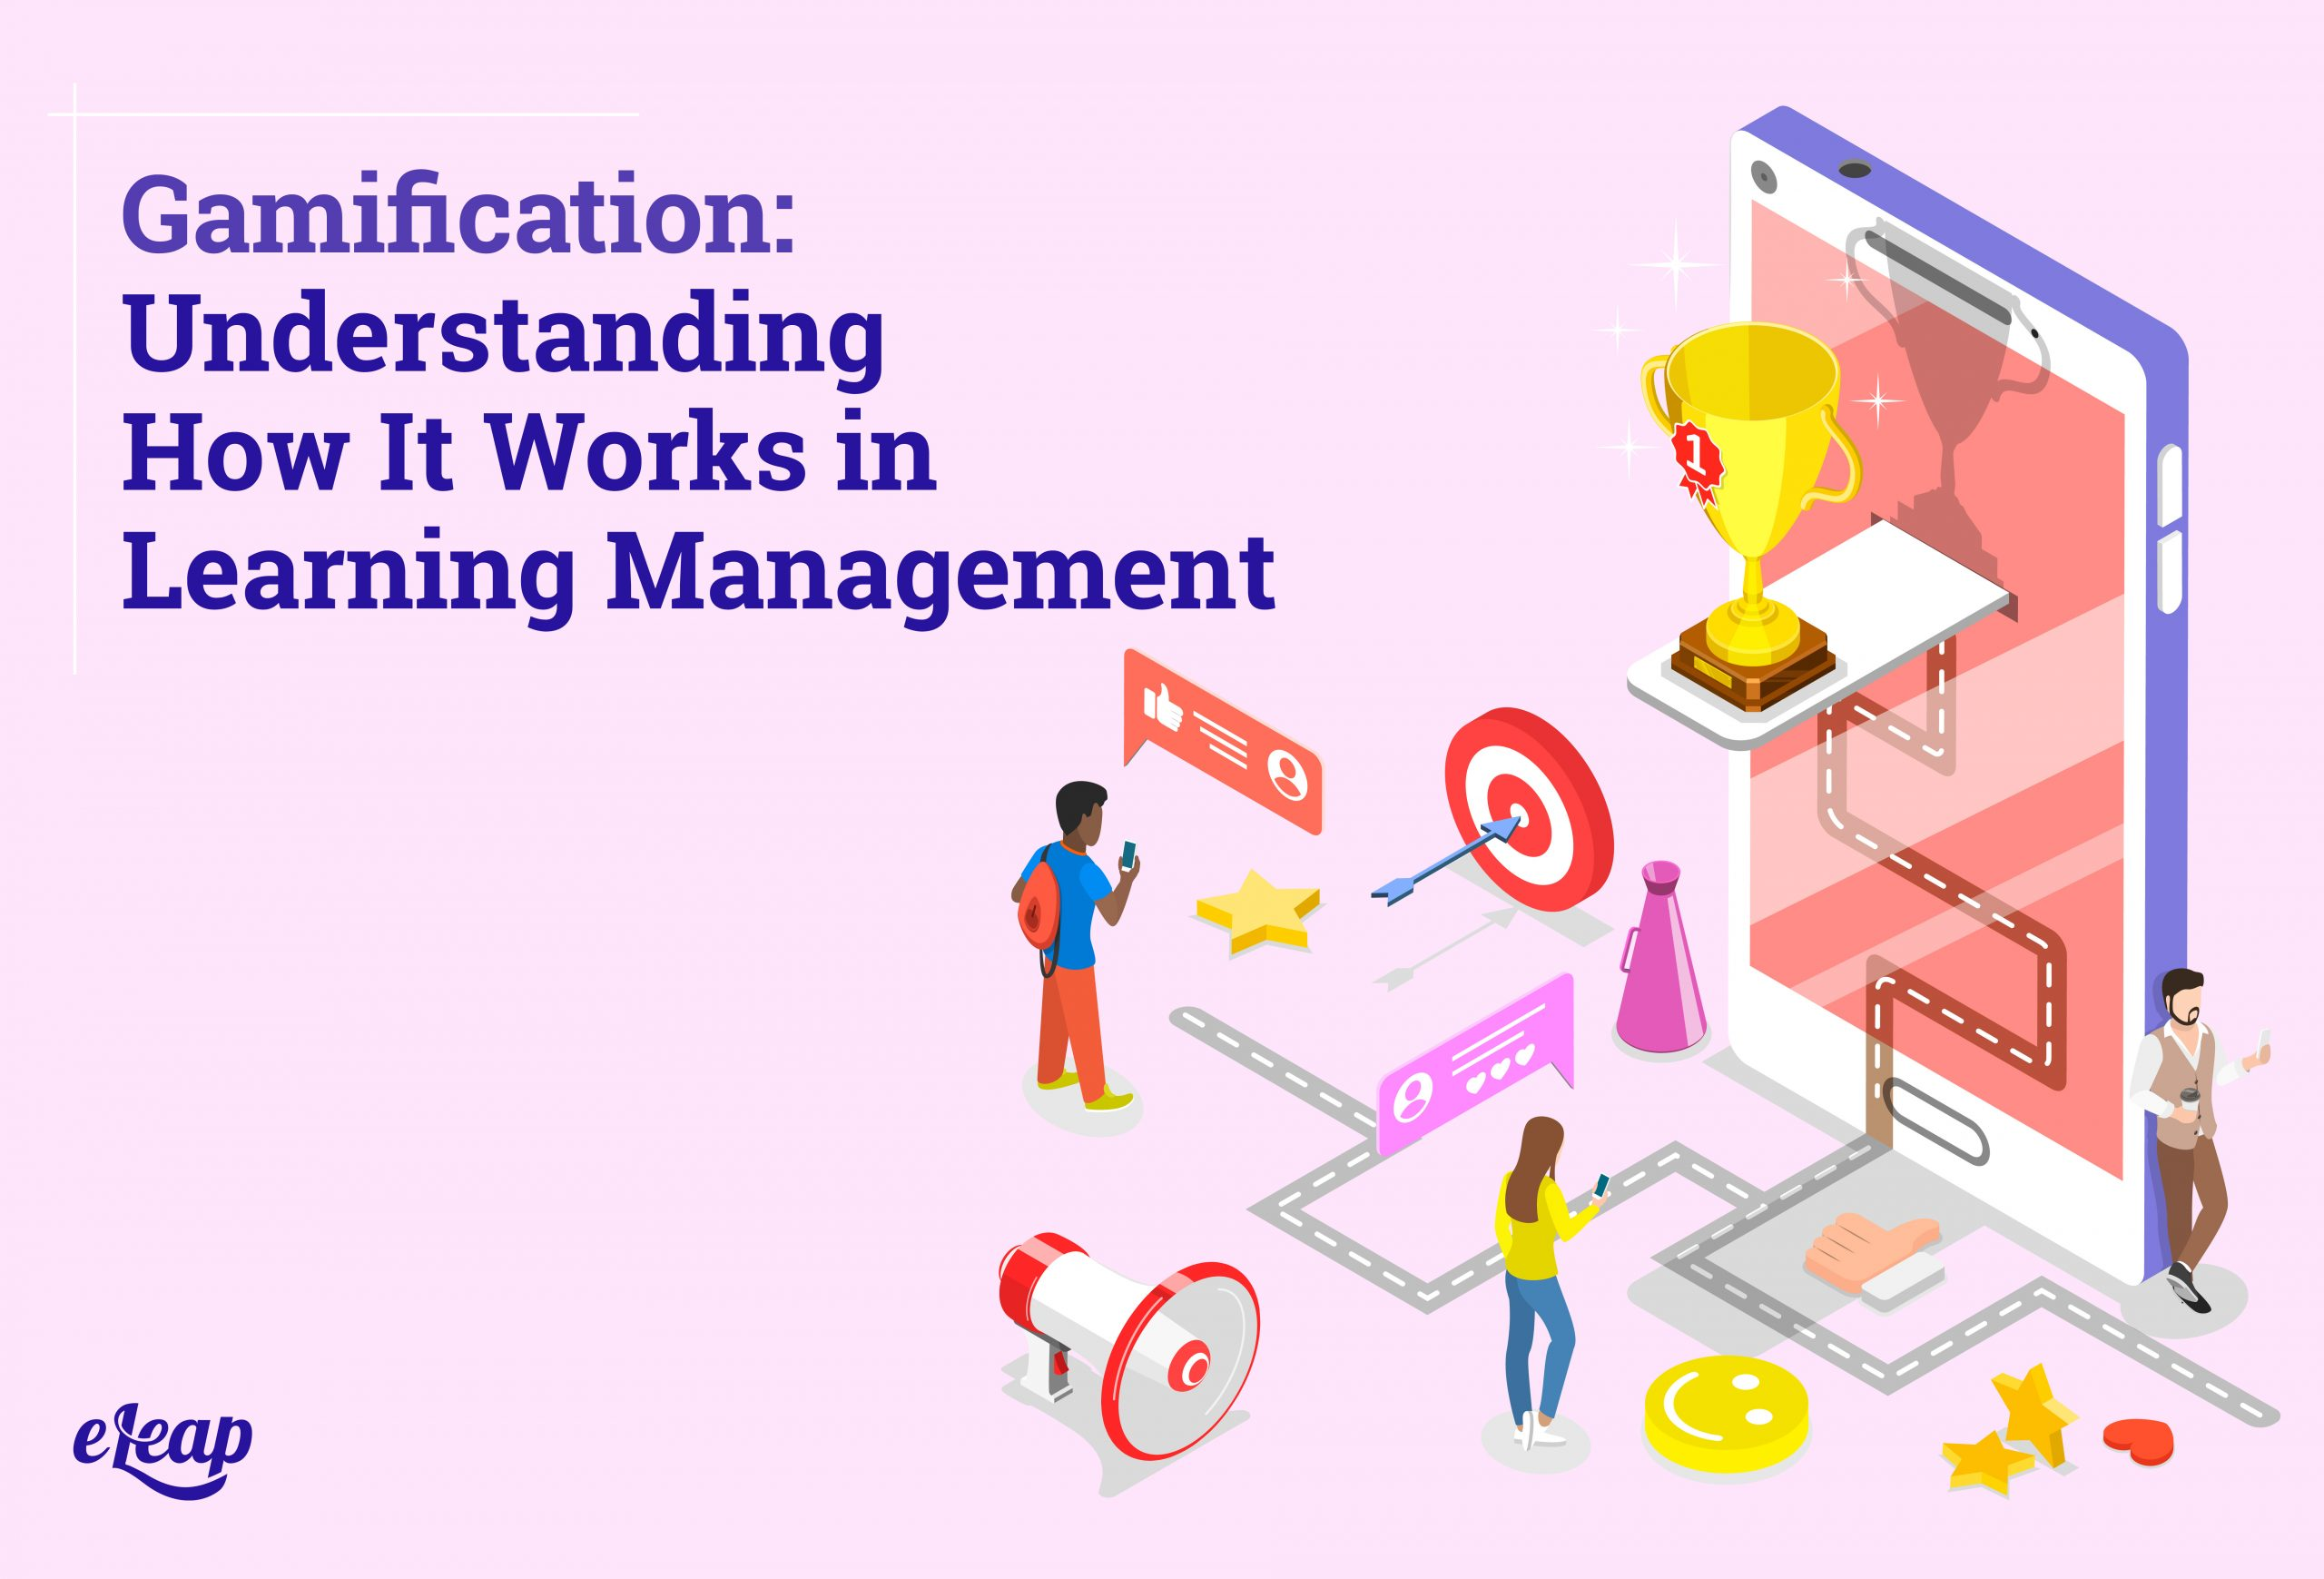 Gamification: Understanding How It Works in Learning Management